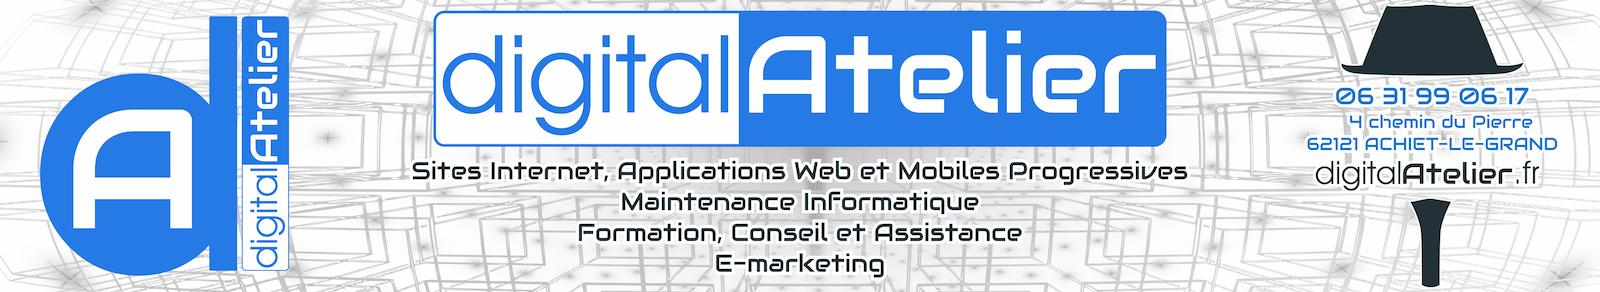 digitalAtelier - Bapaume - Création Site Internet Pro, Informatique